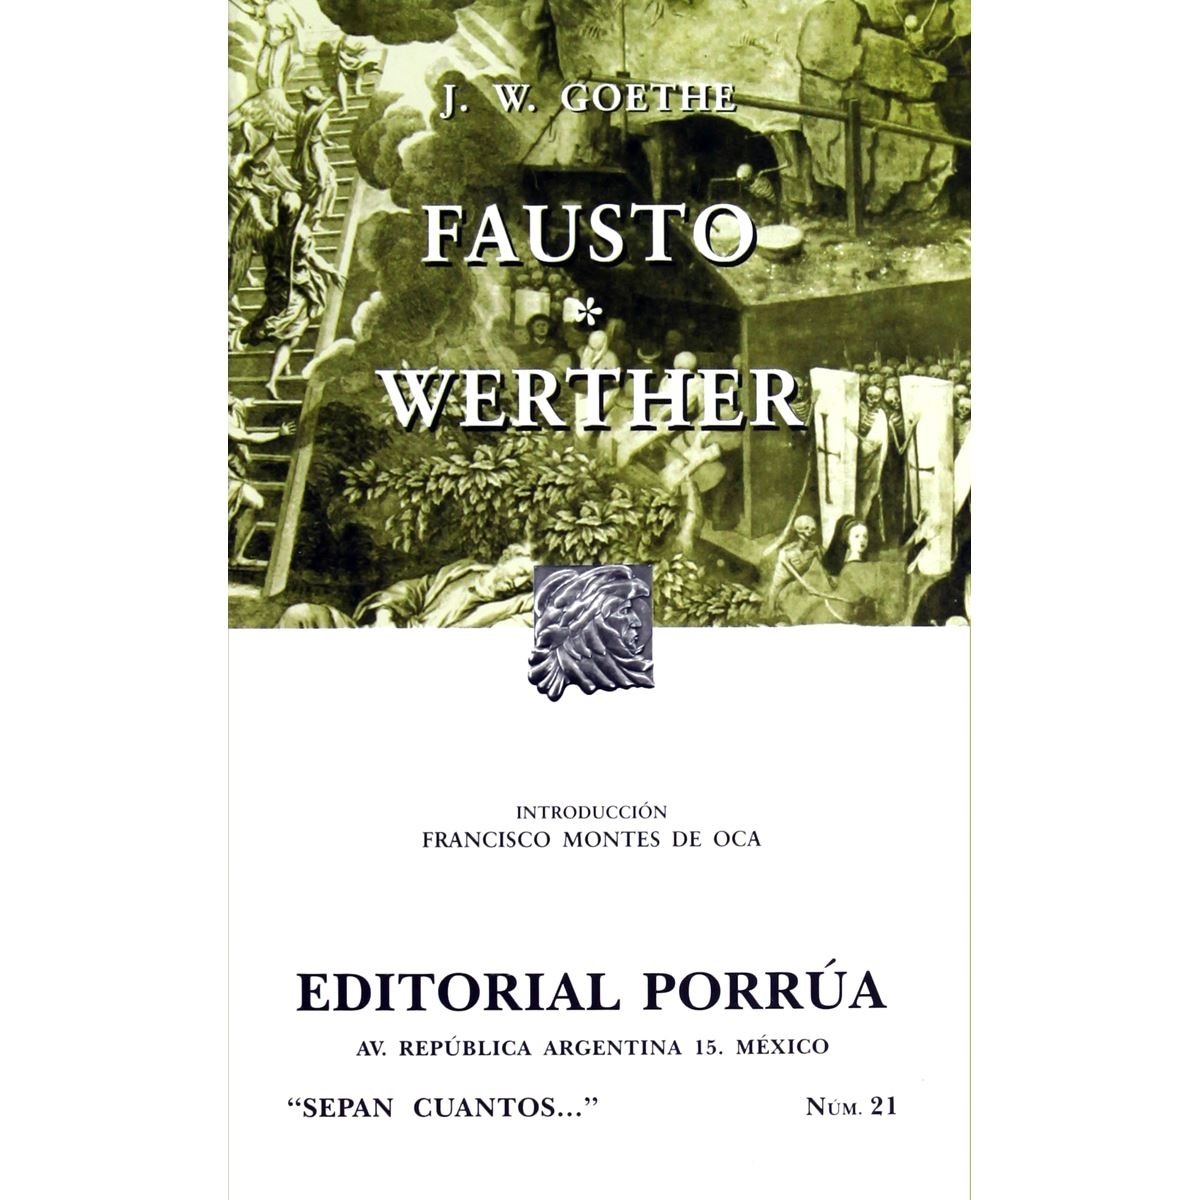 Fausto y Werther